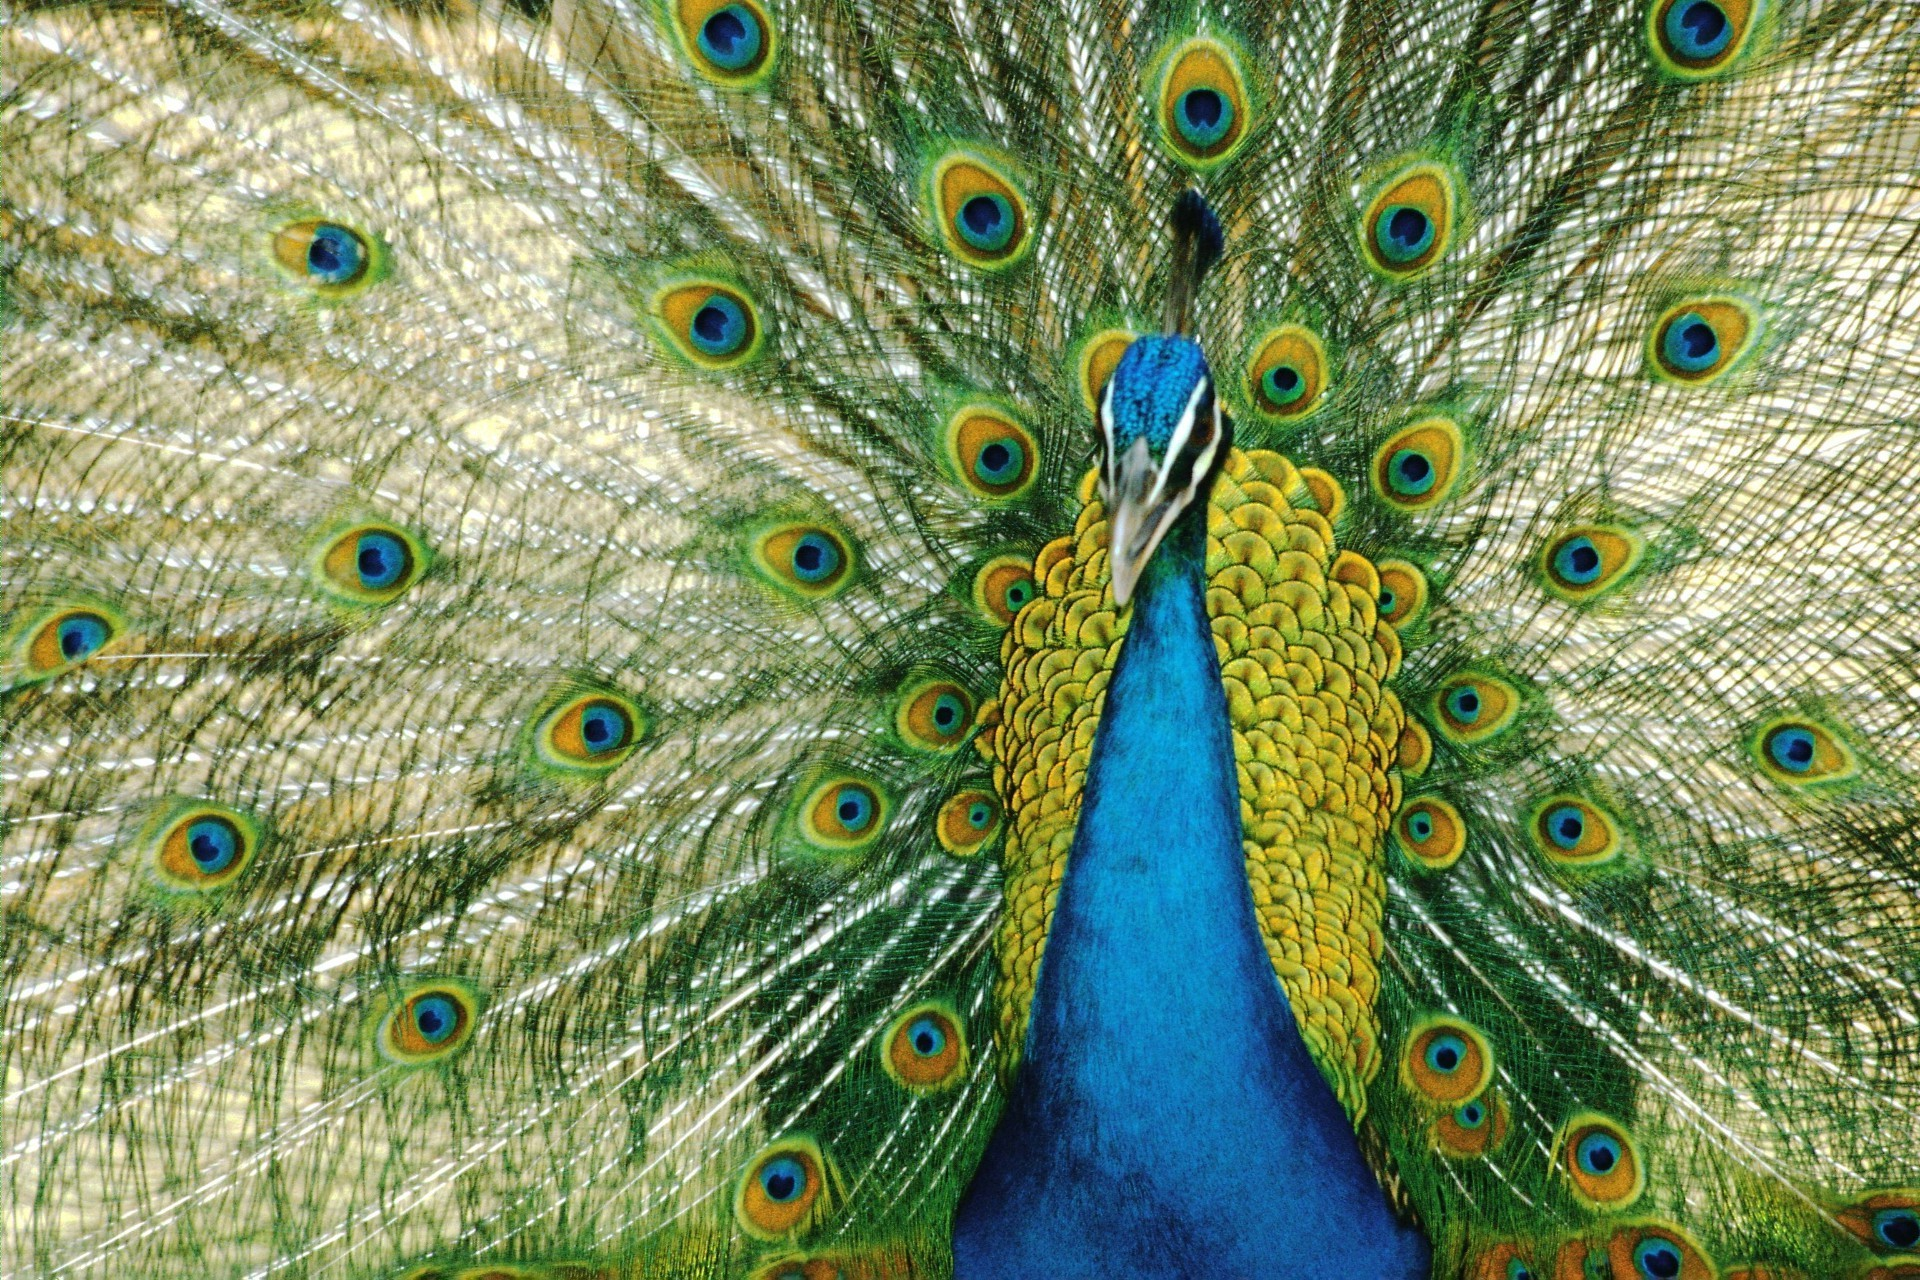 animals peacock pattern feather turquoise tail bird vibrant desktop nature tropical animal texture color bright zoo peafowl wildlife multi exhibition ritual